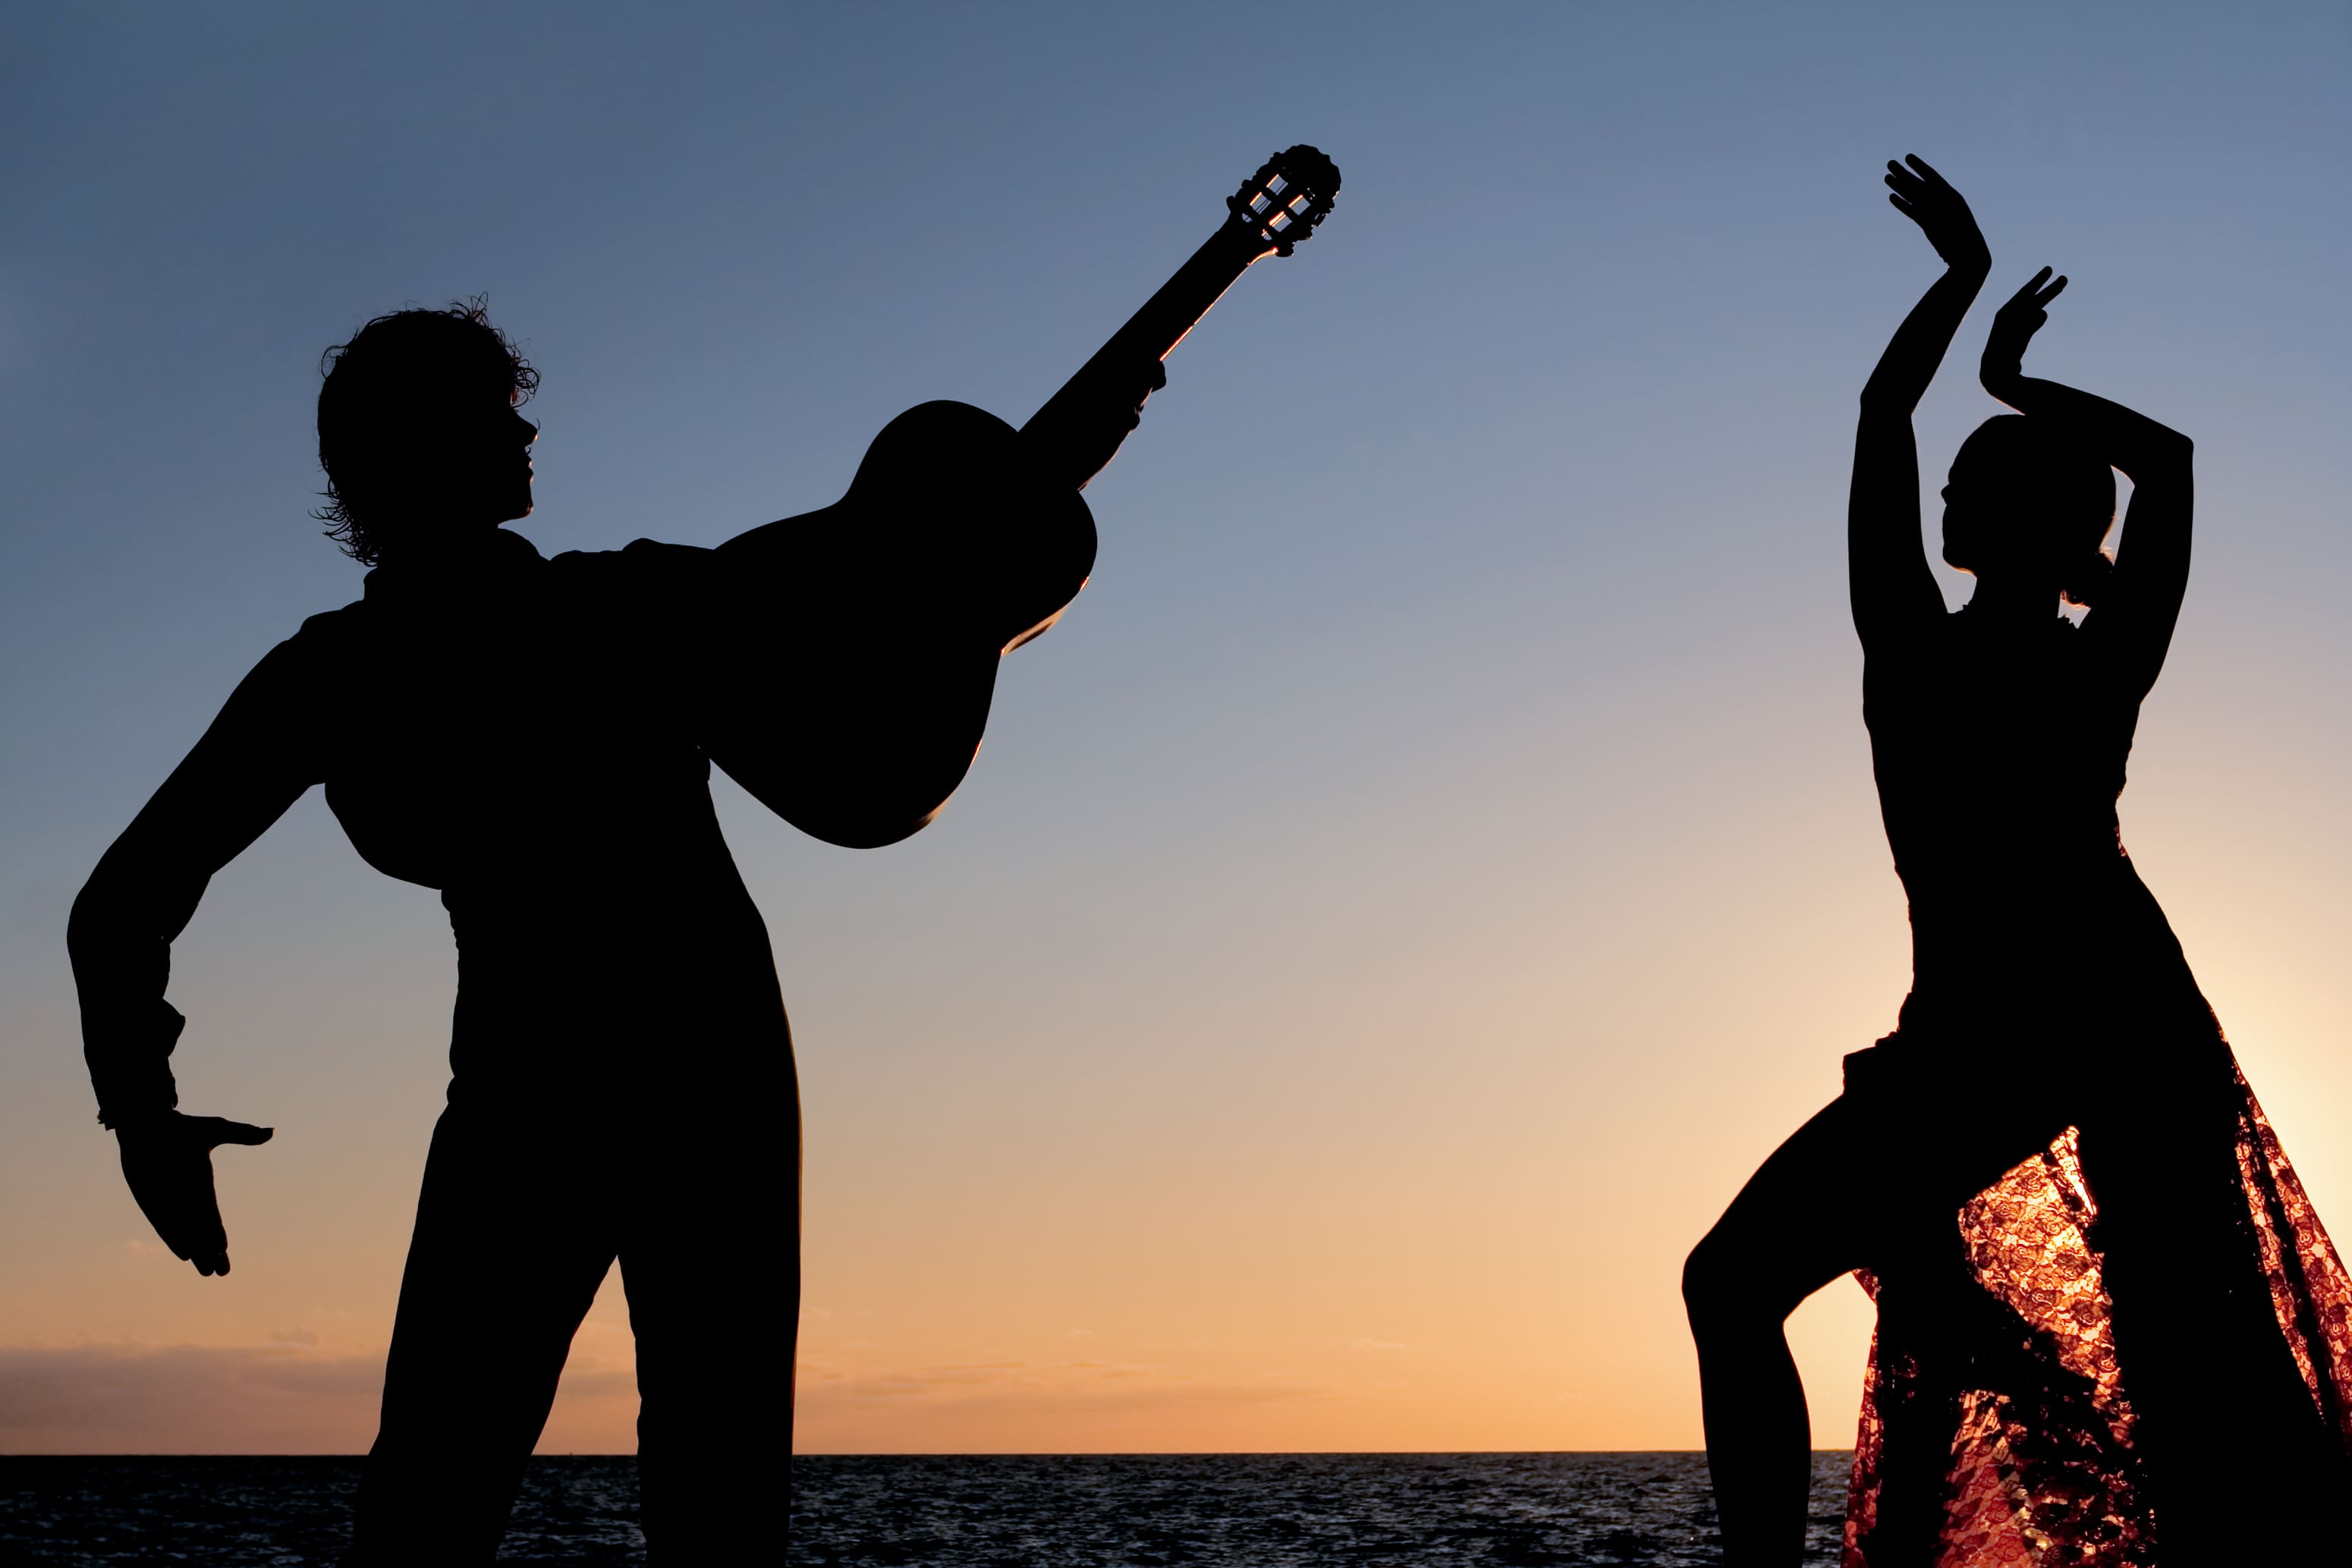 silhouette of spanish dancers dancing outdoors with guitar.